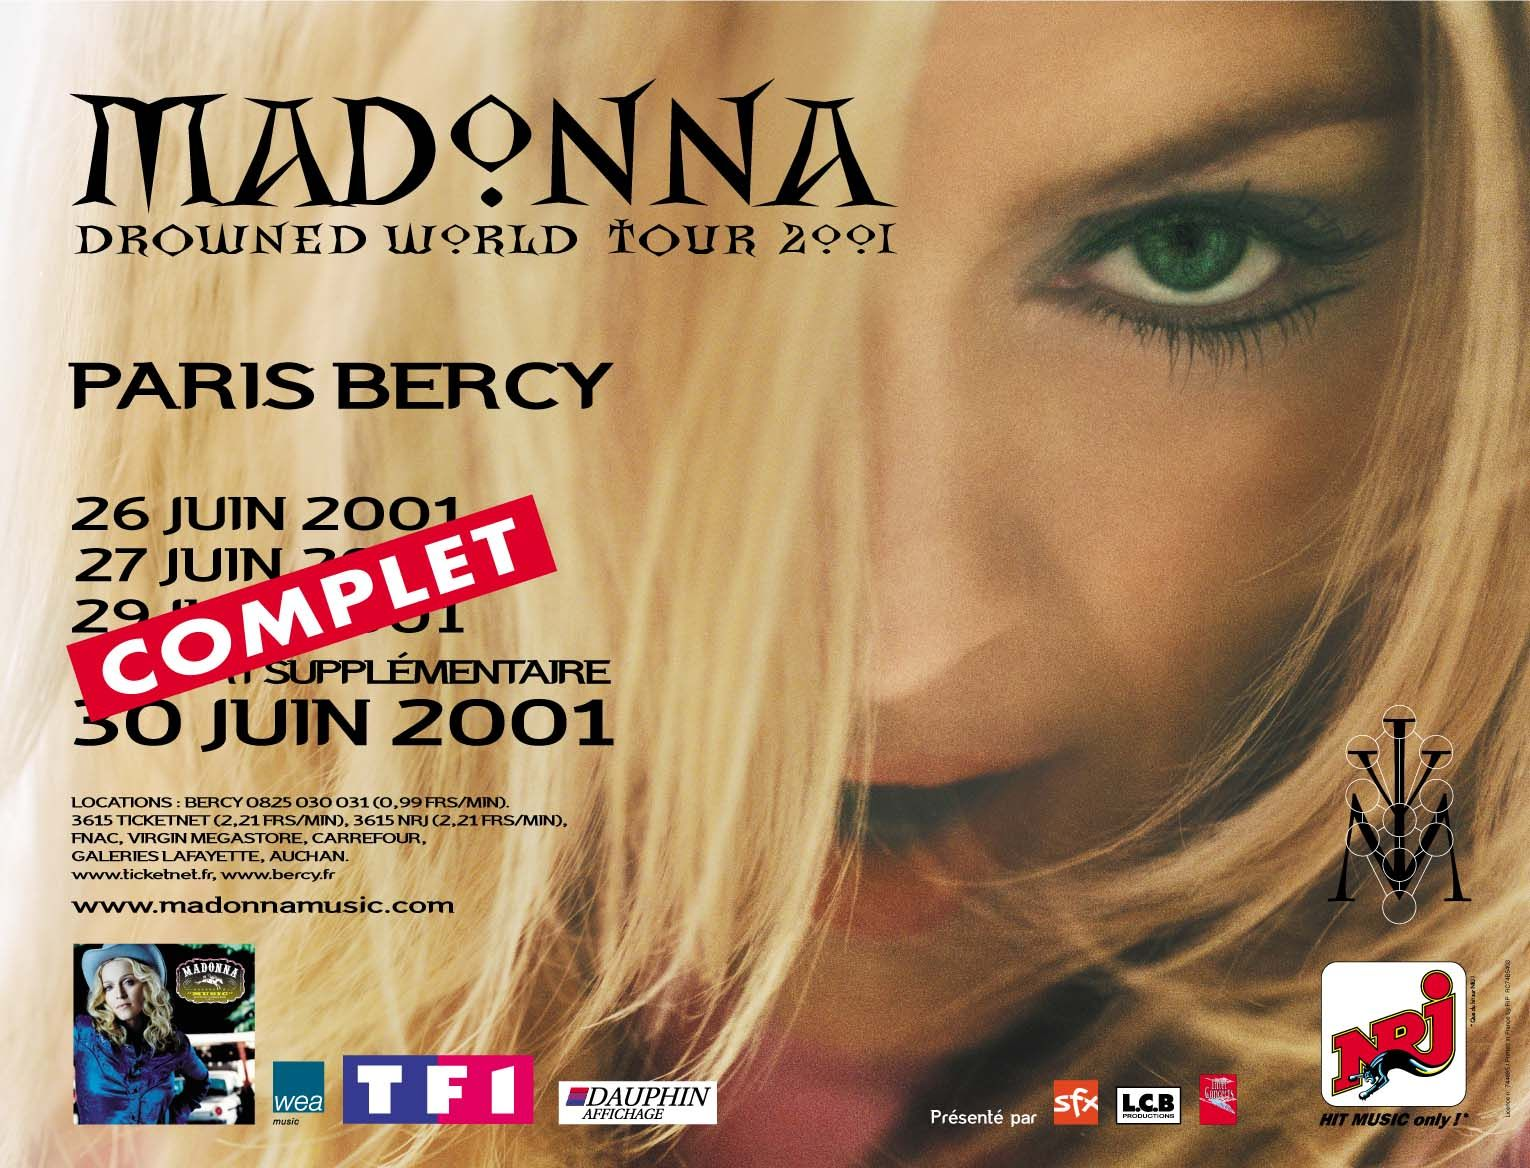 Pin By Bruce Wells On Madonna Covers Madonna Tour Tour Posters Madonna